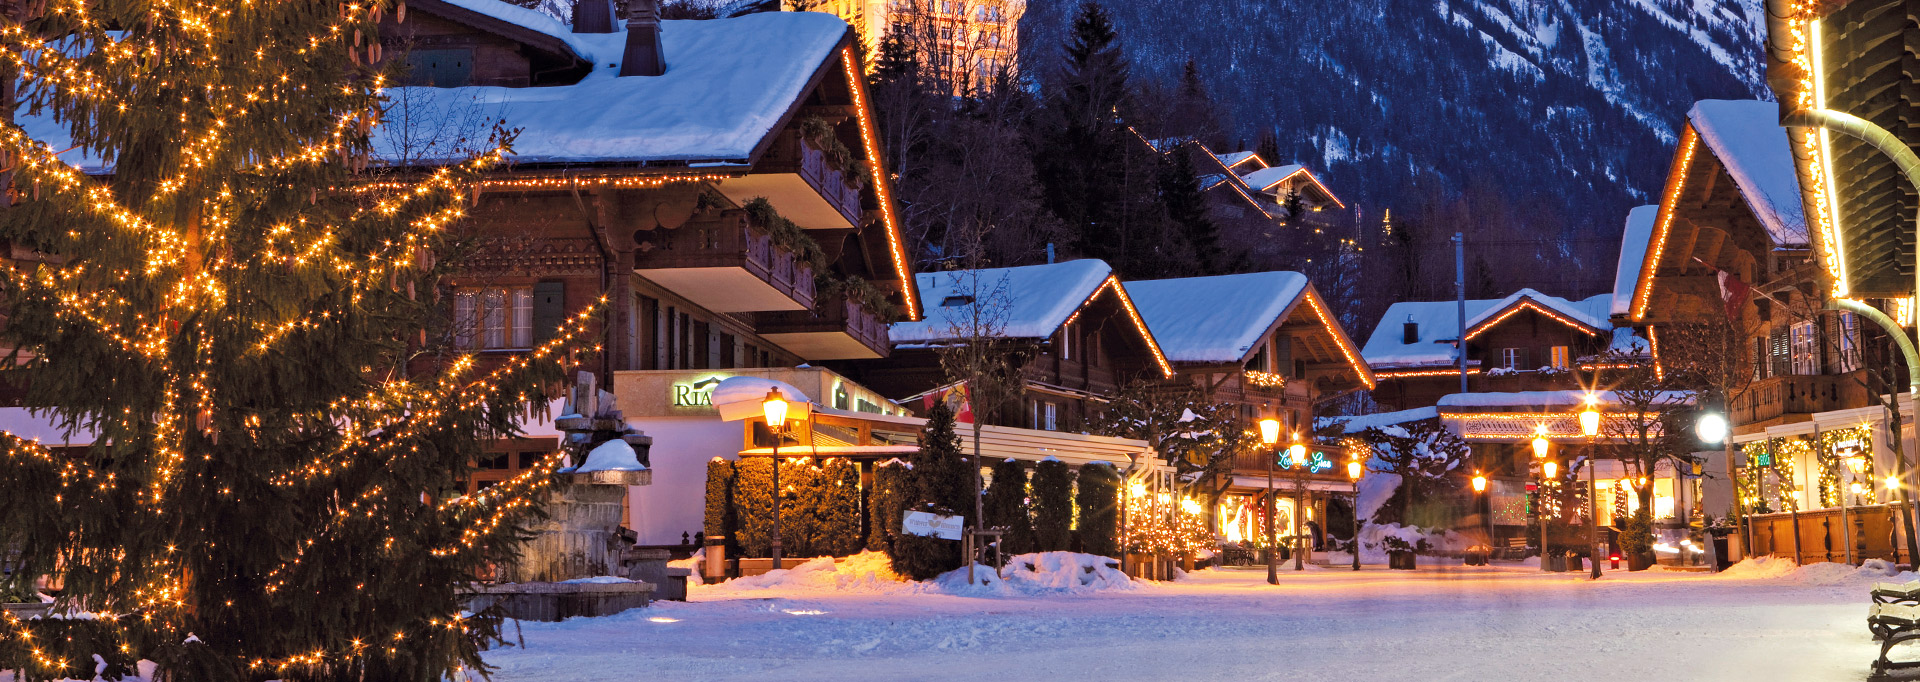 Christmas In Switzerland.6 Day Christmas Break In Switzerland Travelsphere